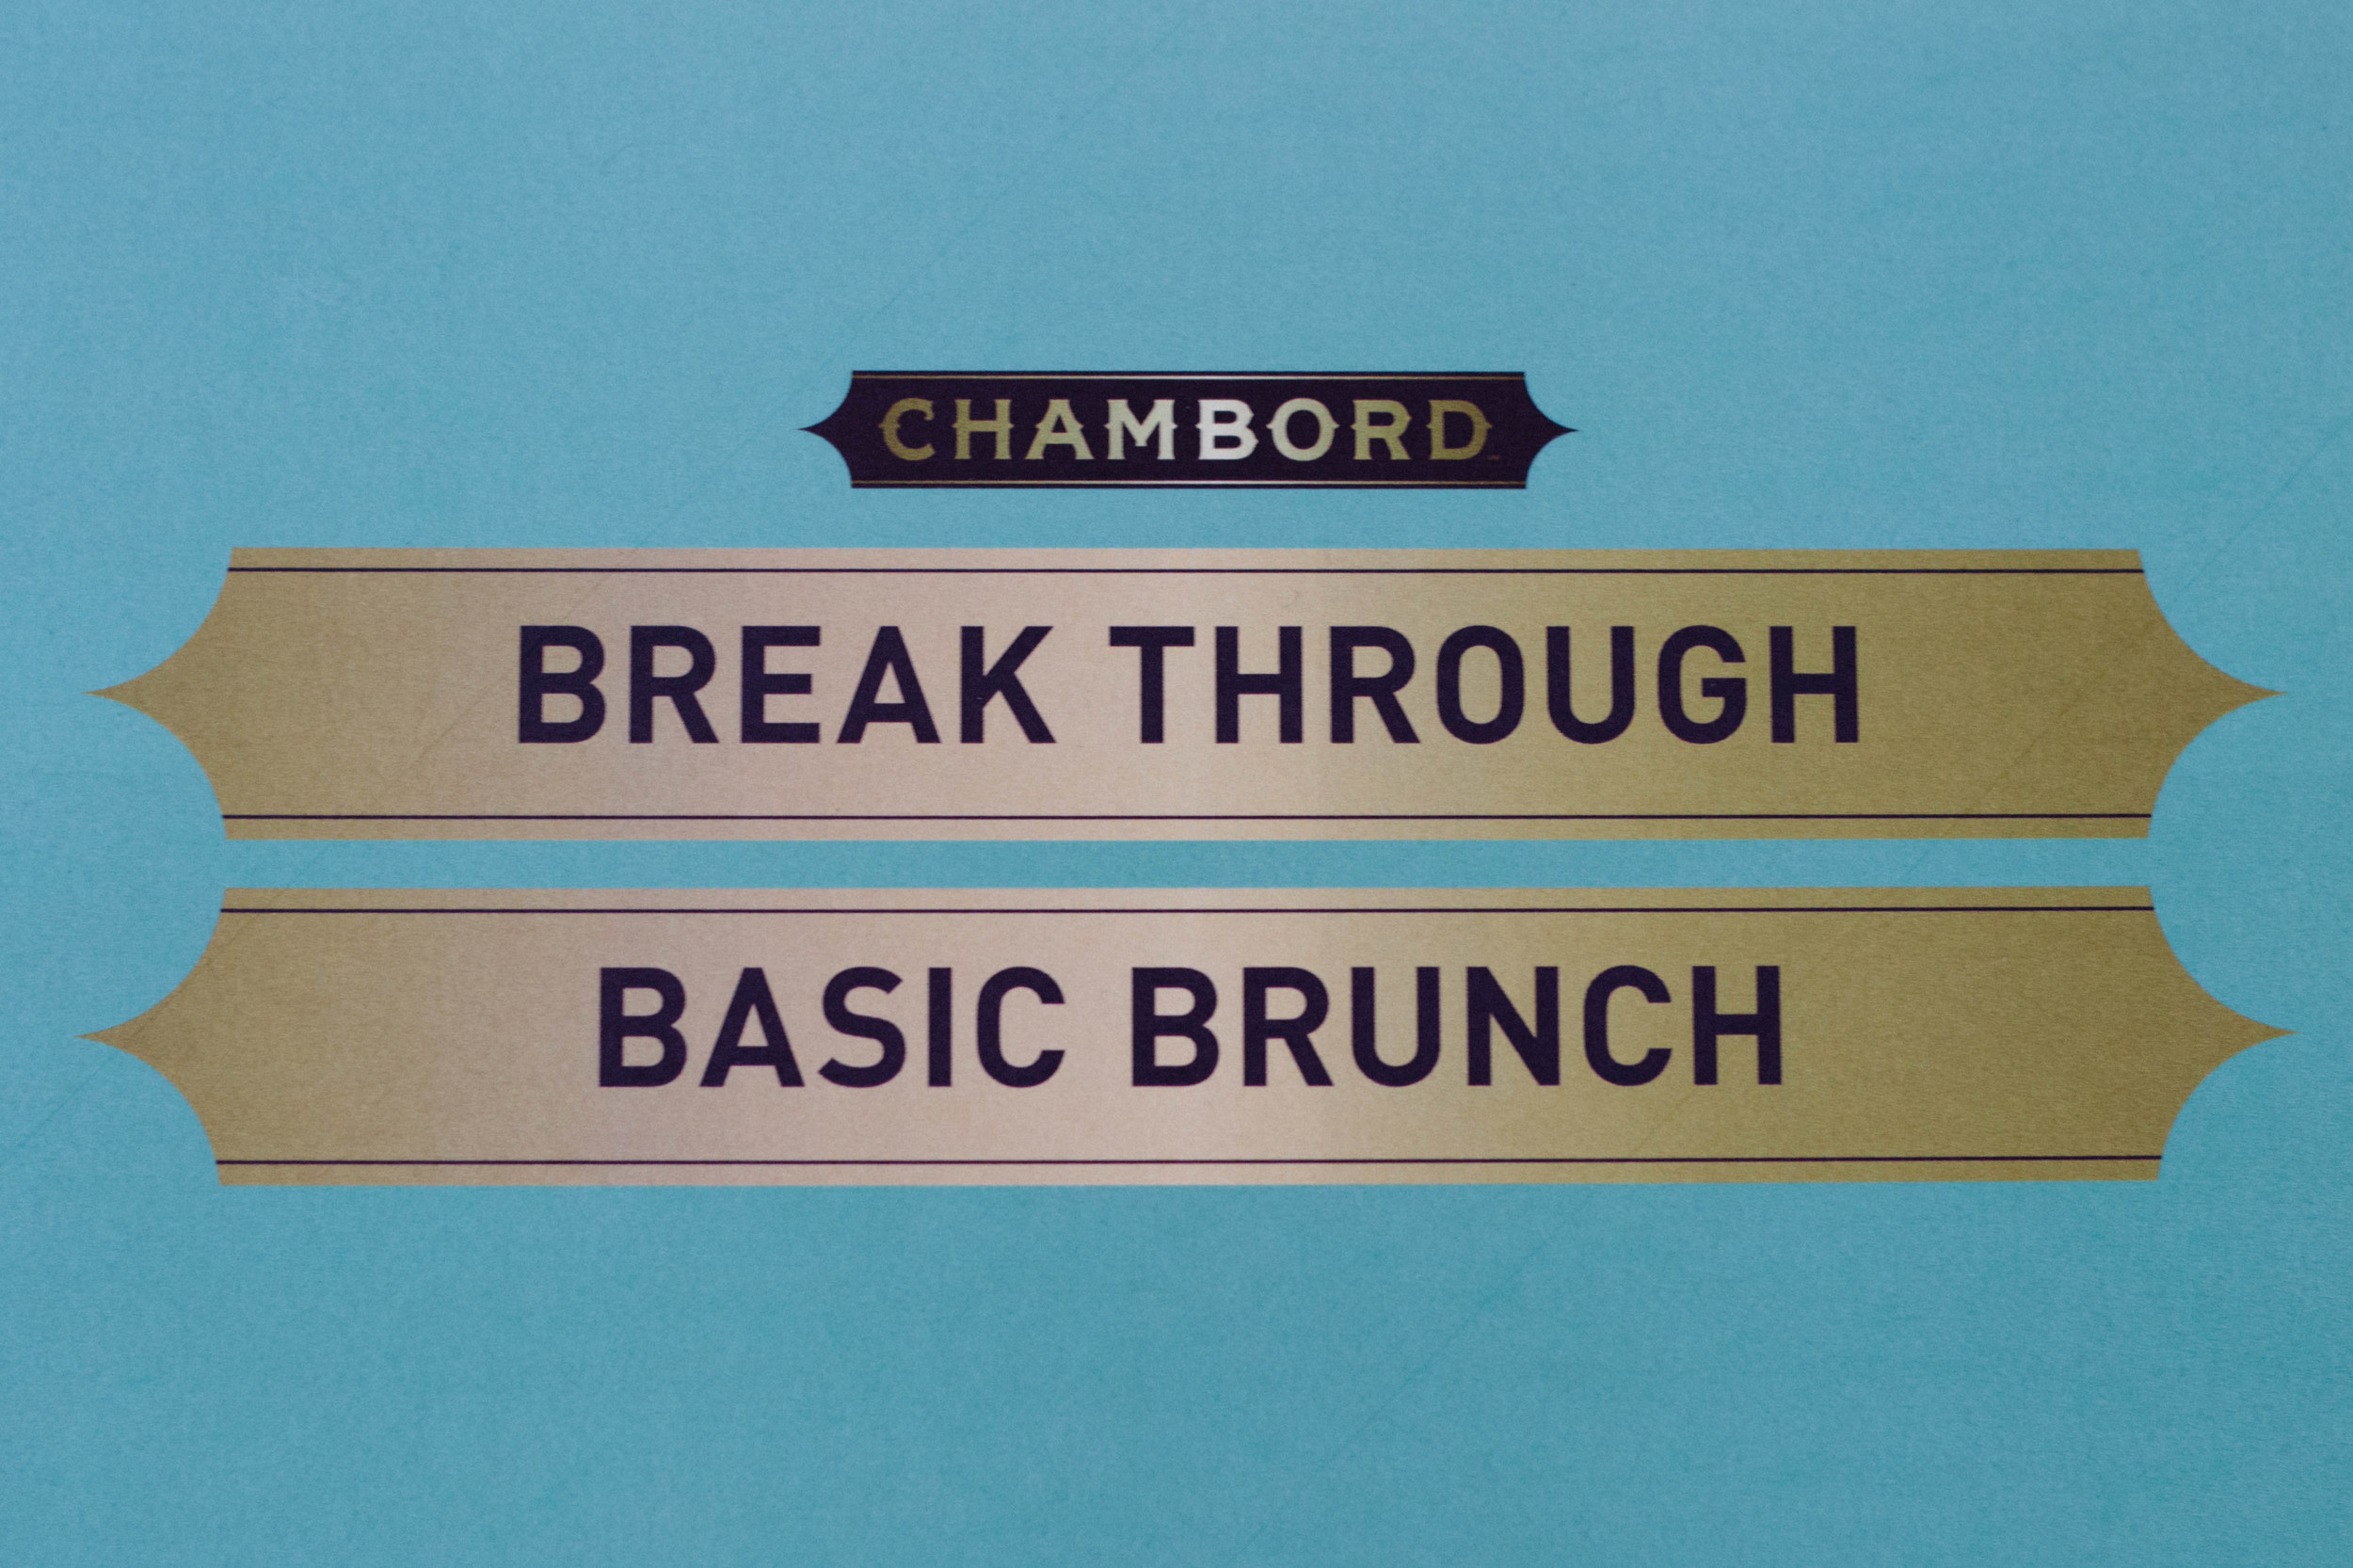 Break Through Basic Brunch - Chambord